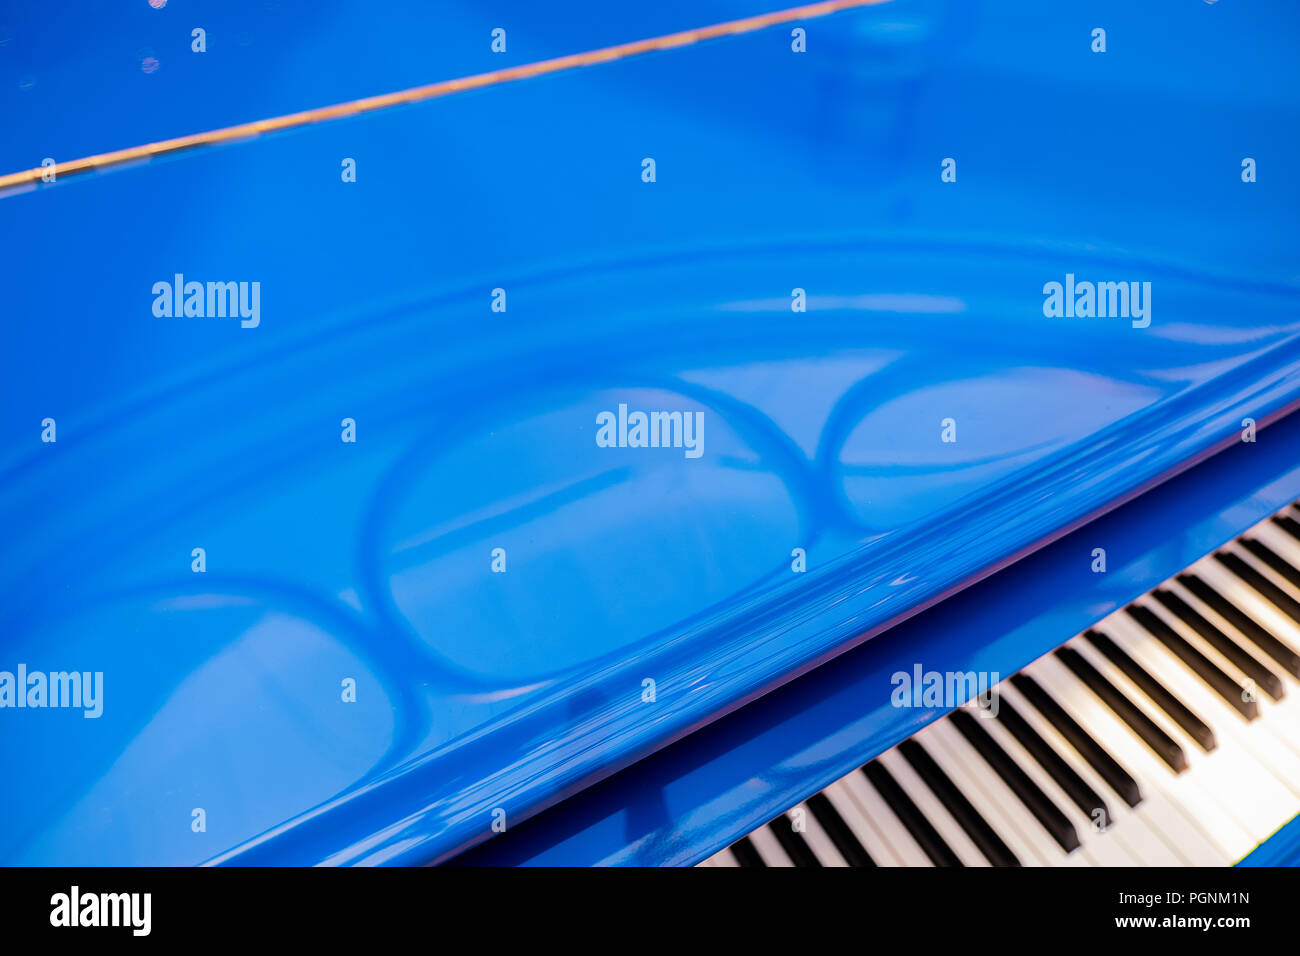 Bright Blue piano Stock Photo: 216835633 - Alamy